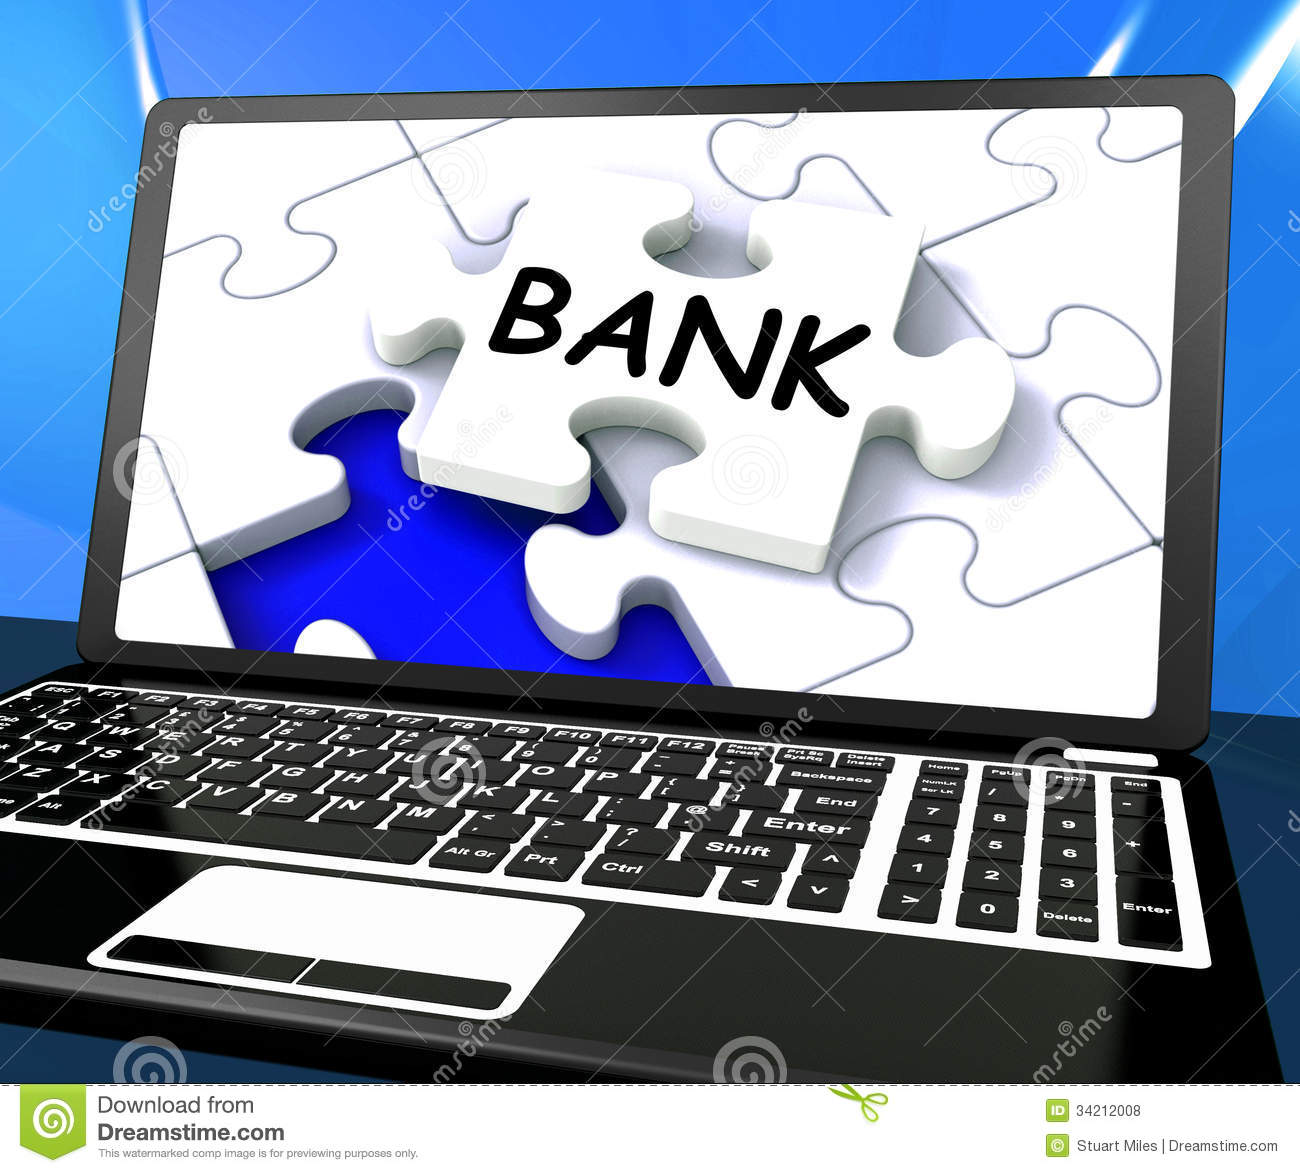 No Credit Check Financing Electronics Bank Laptop Shows Internet Finance Www Or Electronic